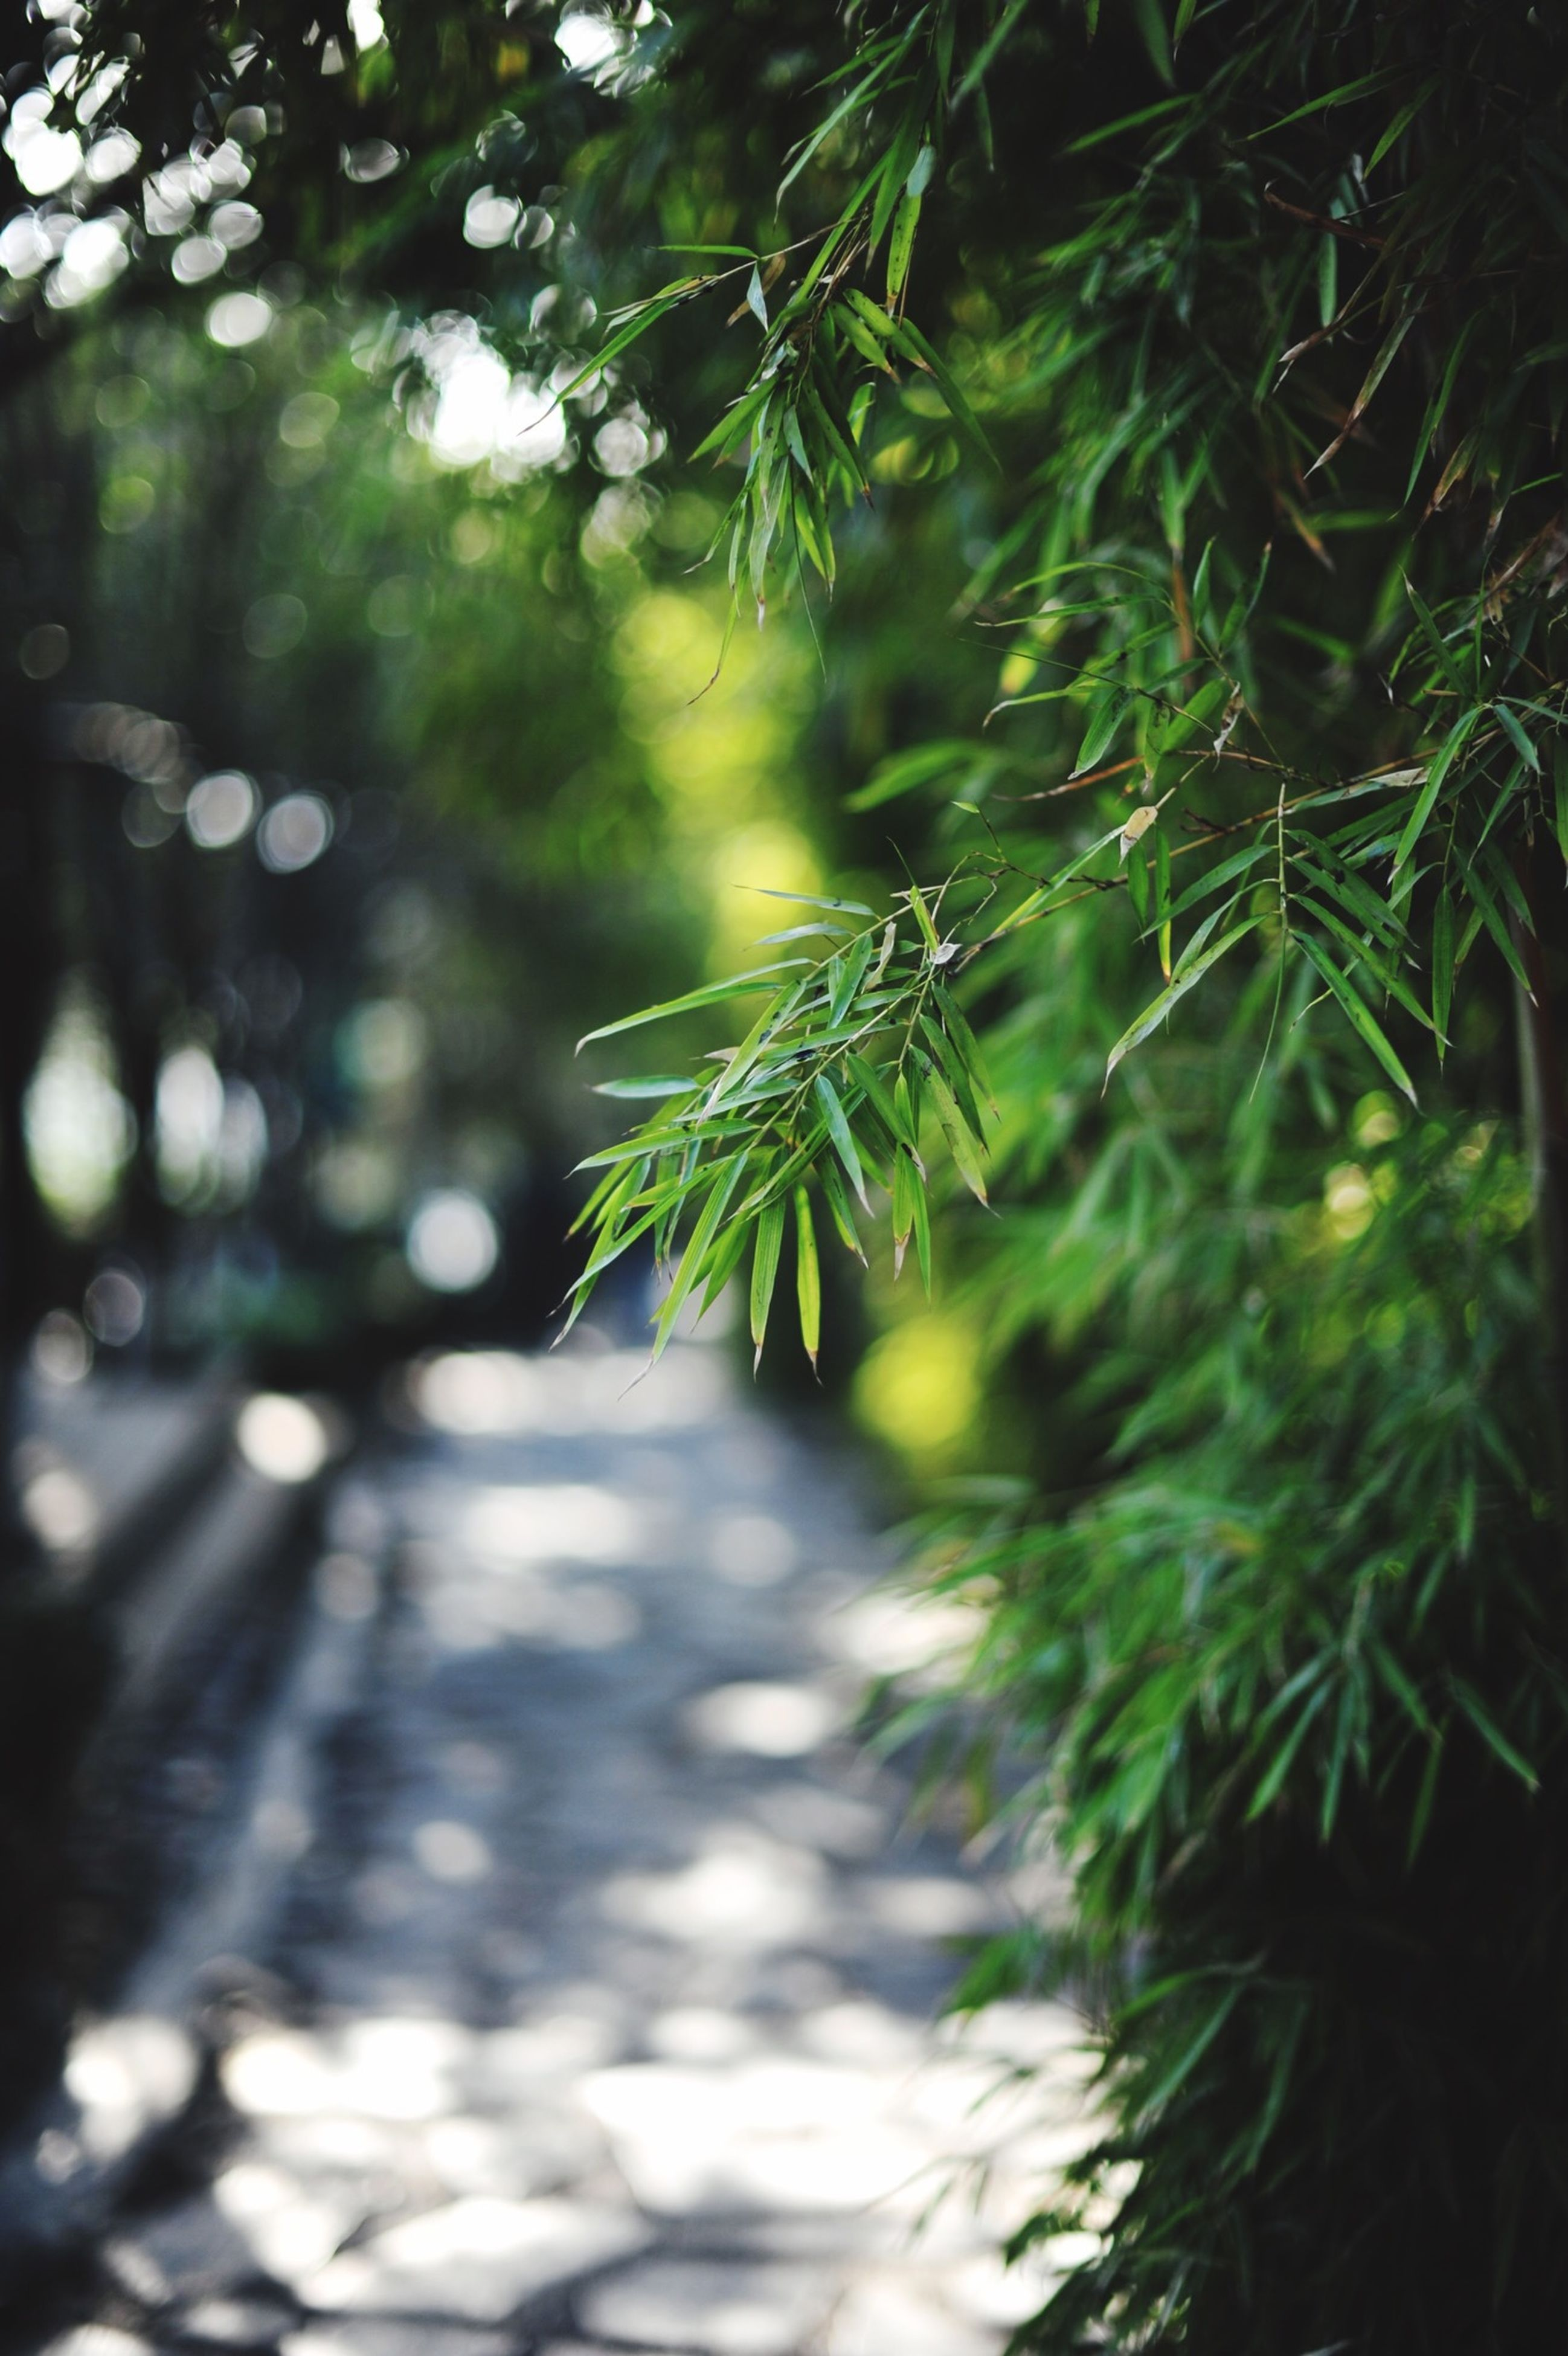 growth, leaf, tree, plant, green color, the way forward, nature, street, wet, road, selective focus, transportation, no people, day, focus on foreground, outdoors, sunlight, close-up, branch, rain